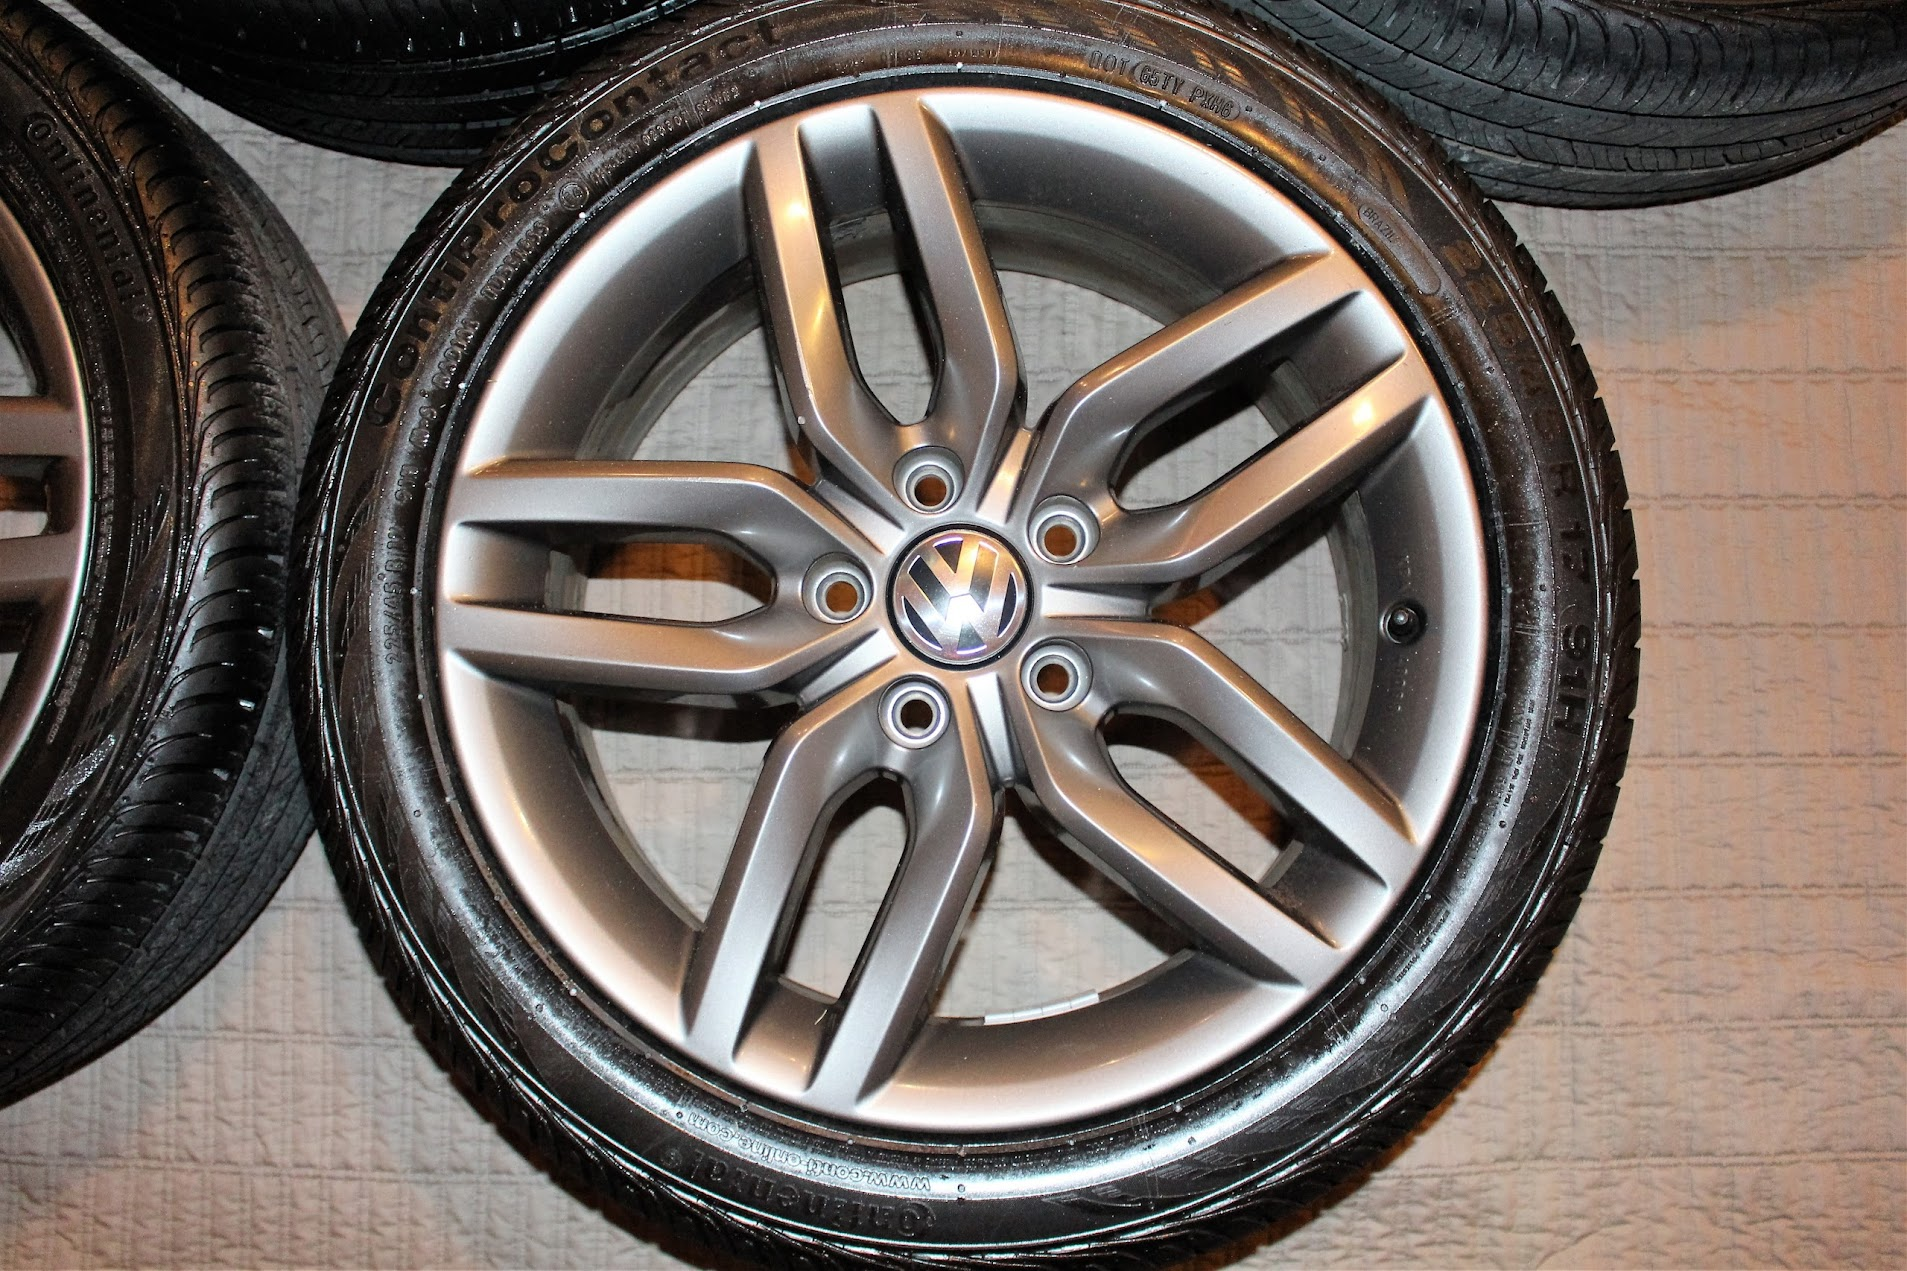 Oem Vw Helix 17 Quot Wheels With New Continental Rubber Vw